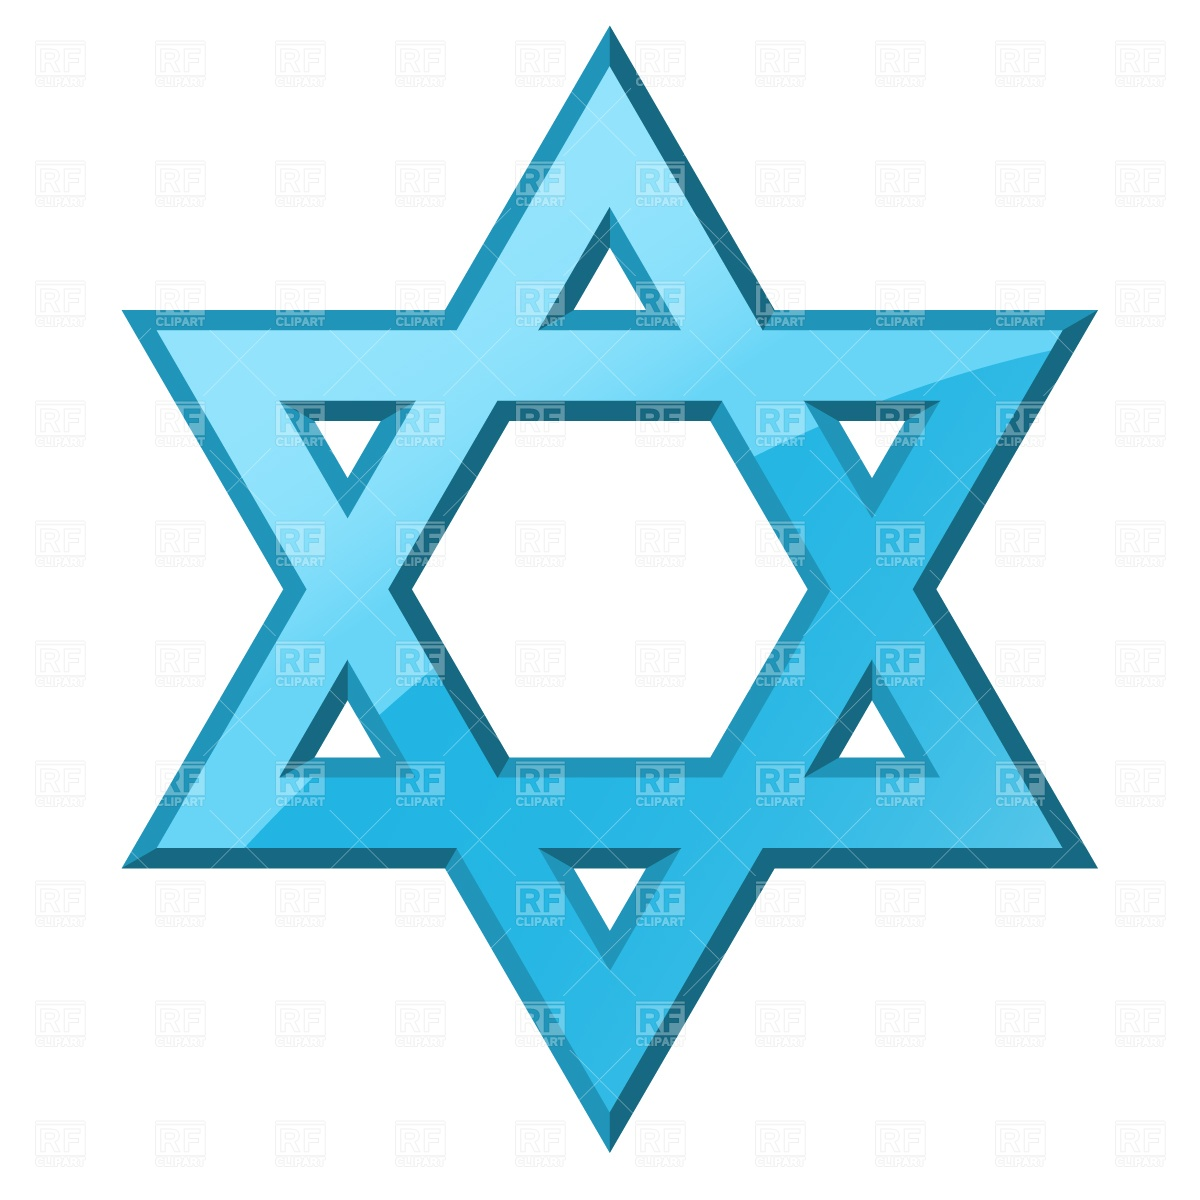 Star of David, 759, Signs, Symbols